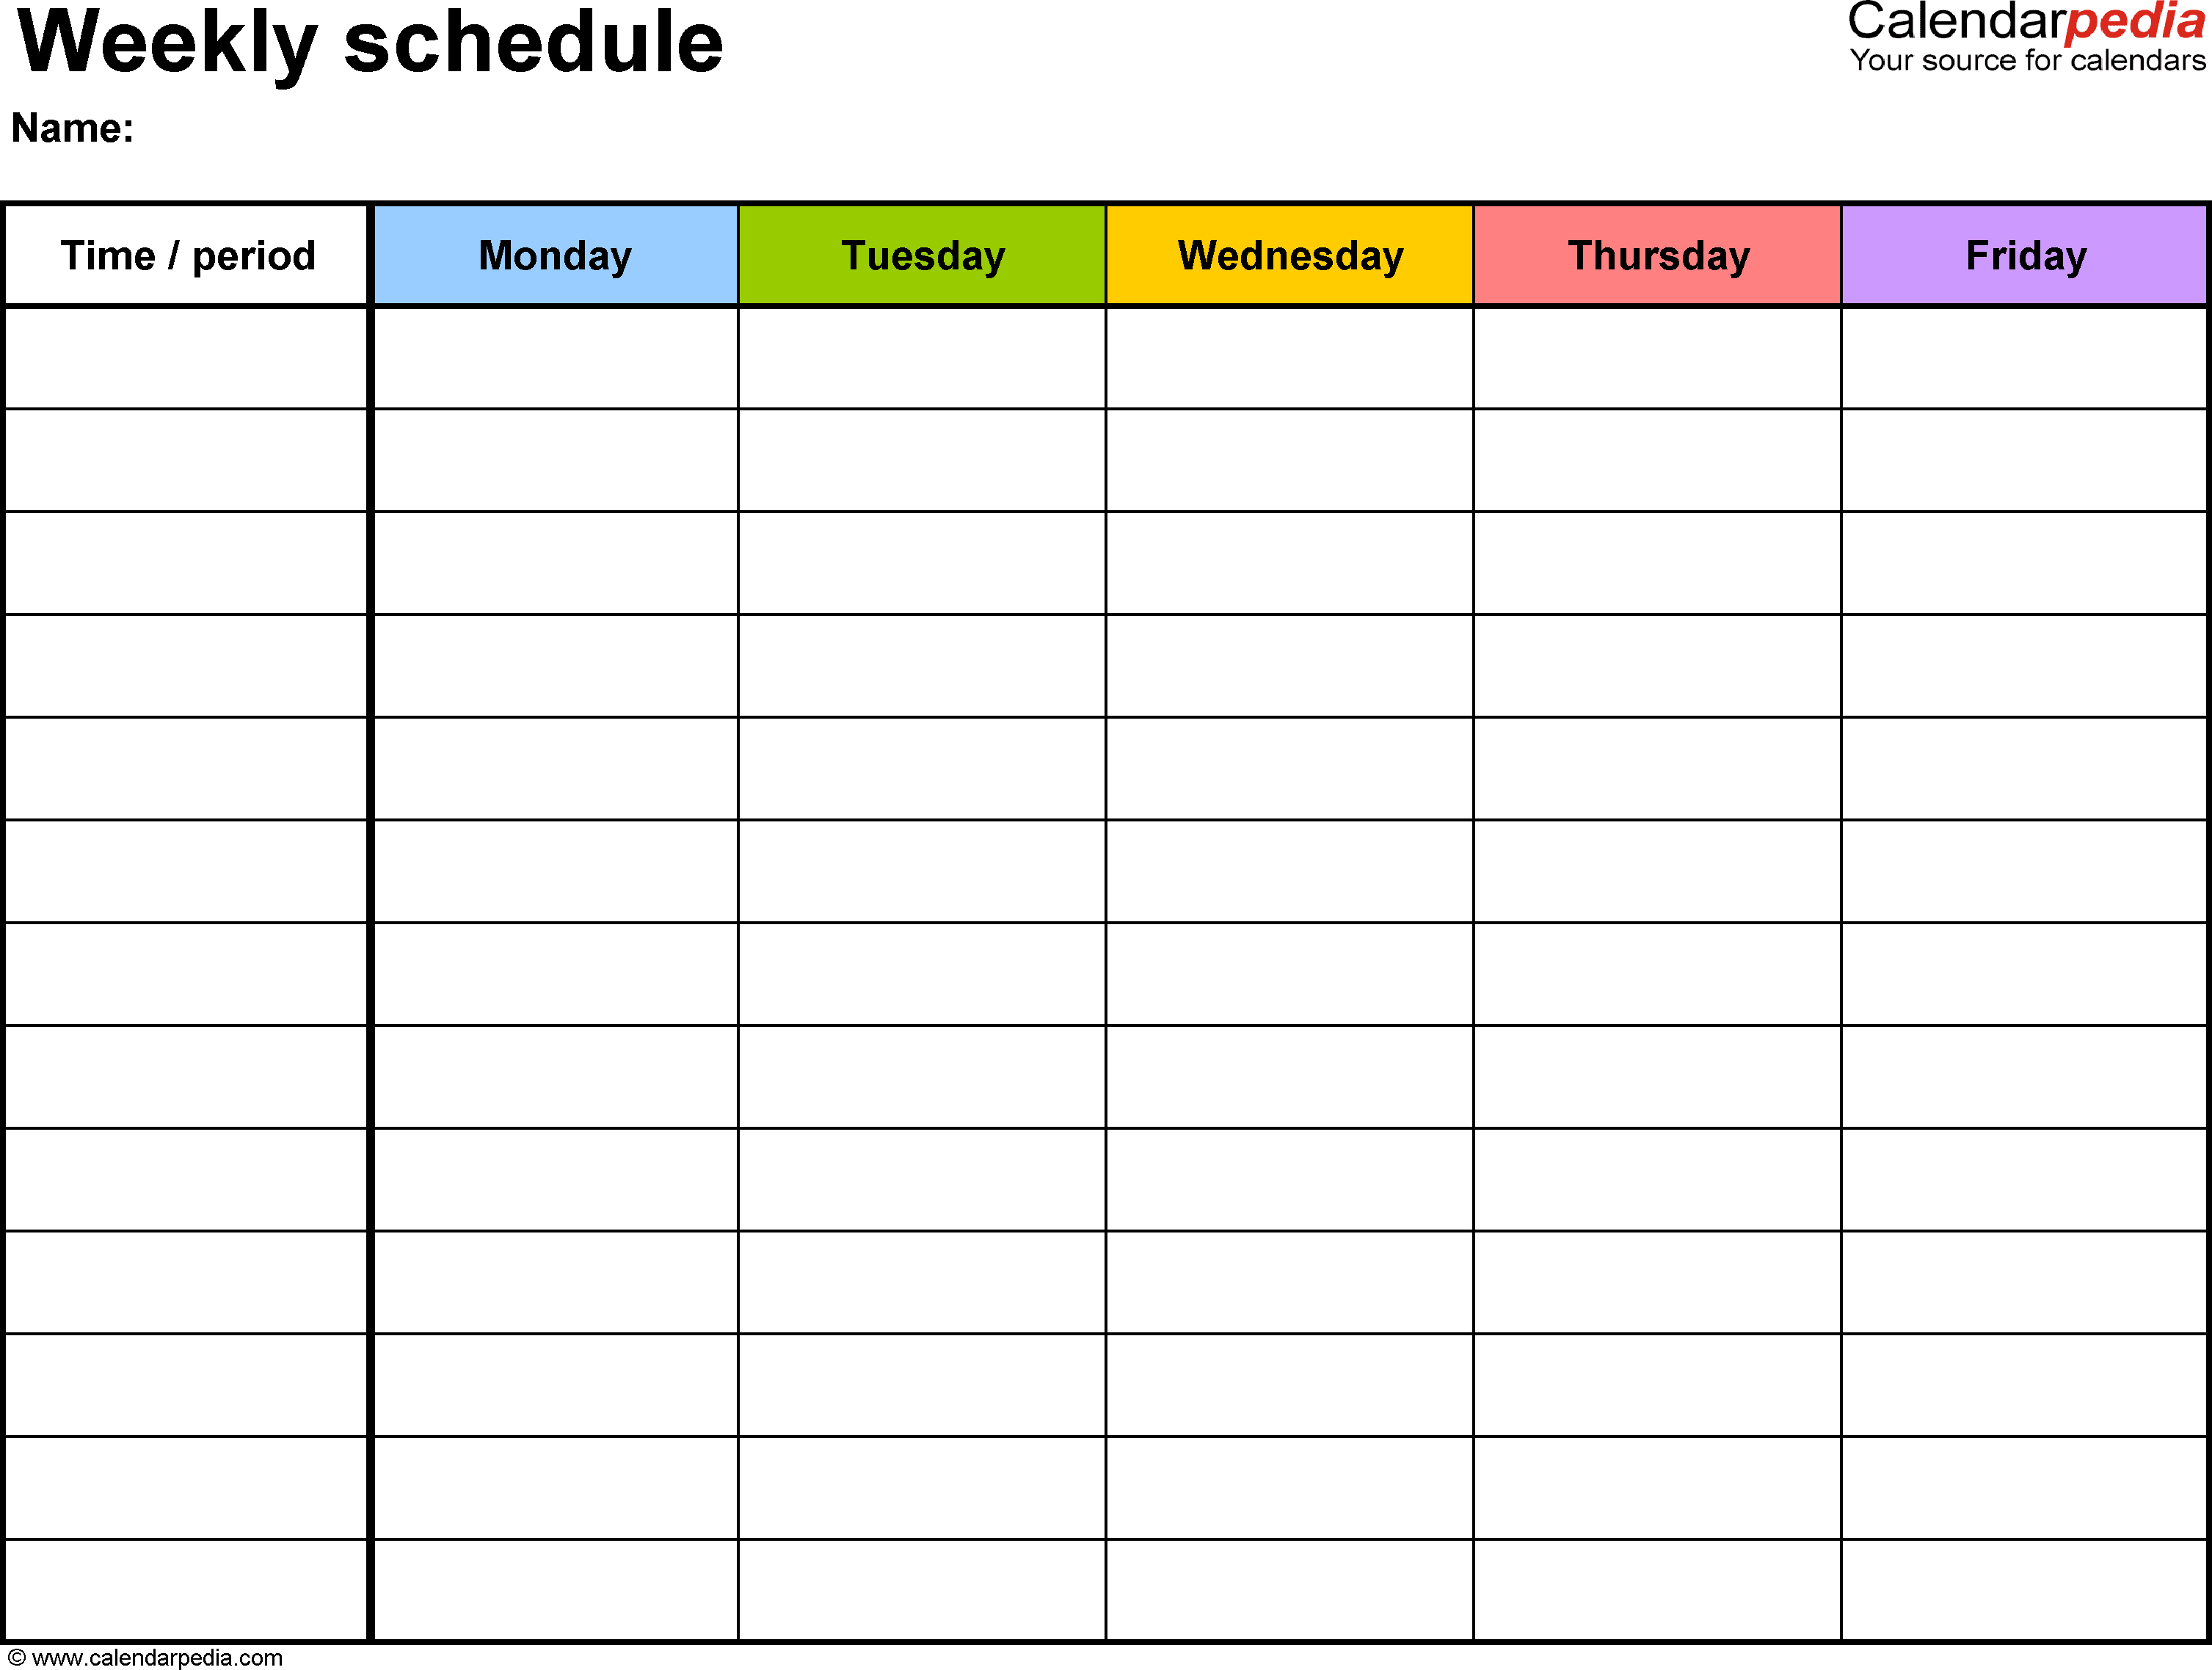 Free Weekly Schedule Templates For Word - 18 Templates with regard to Blank Calendar Template Monday Friday